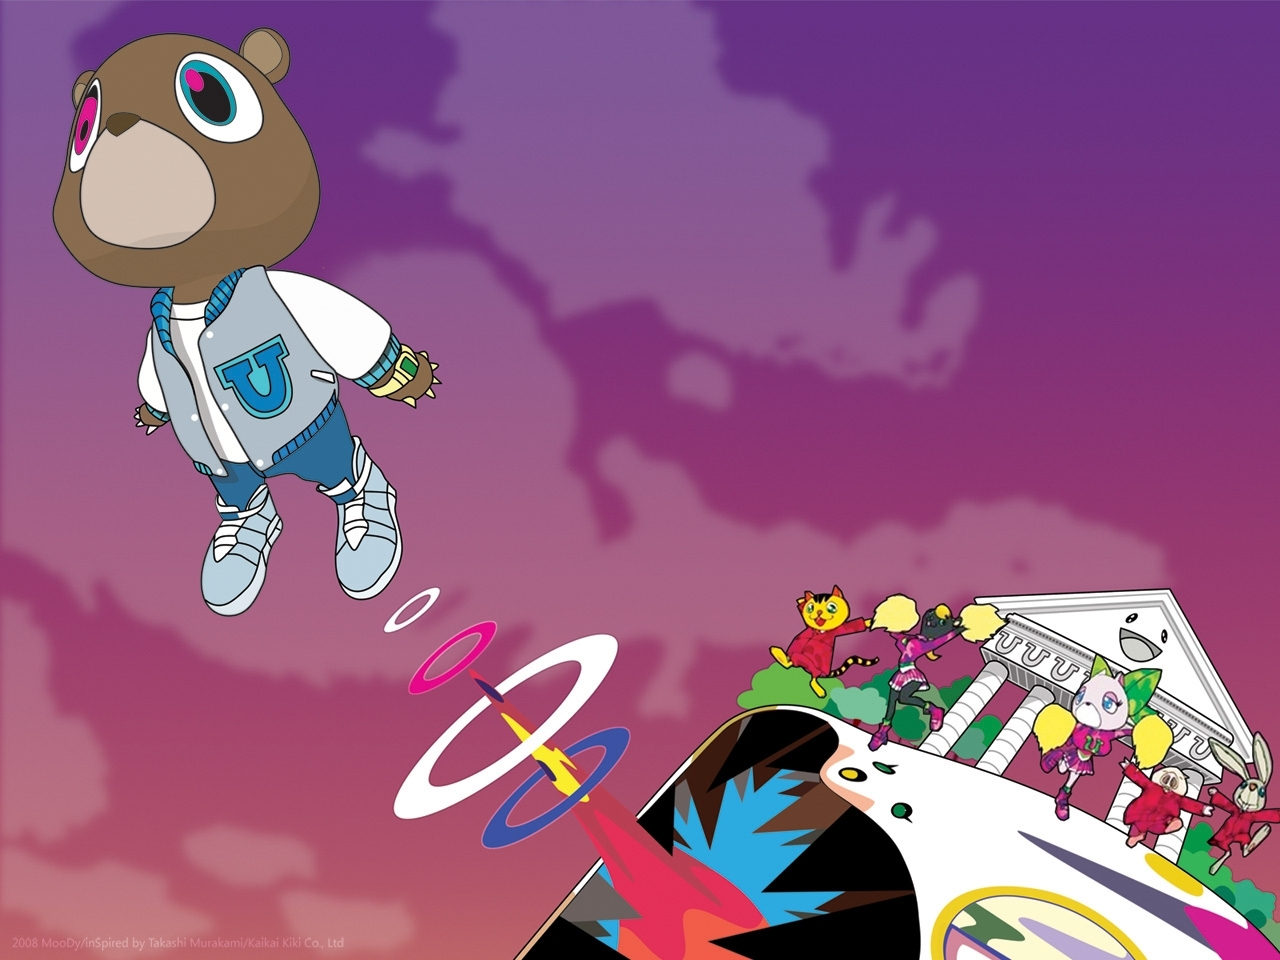 kanye west bear wallpaper desktop background ~ sdeerwallpaper | 1